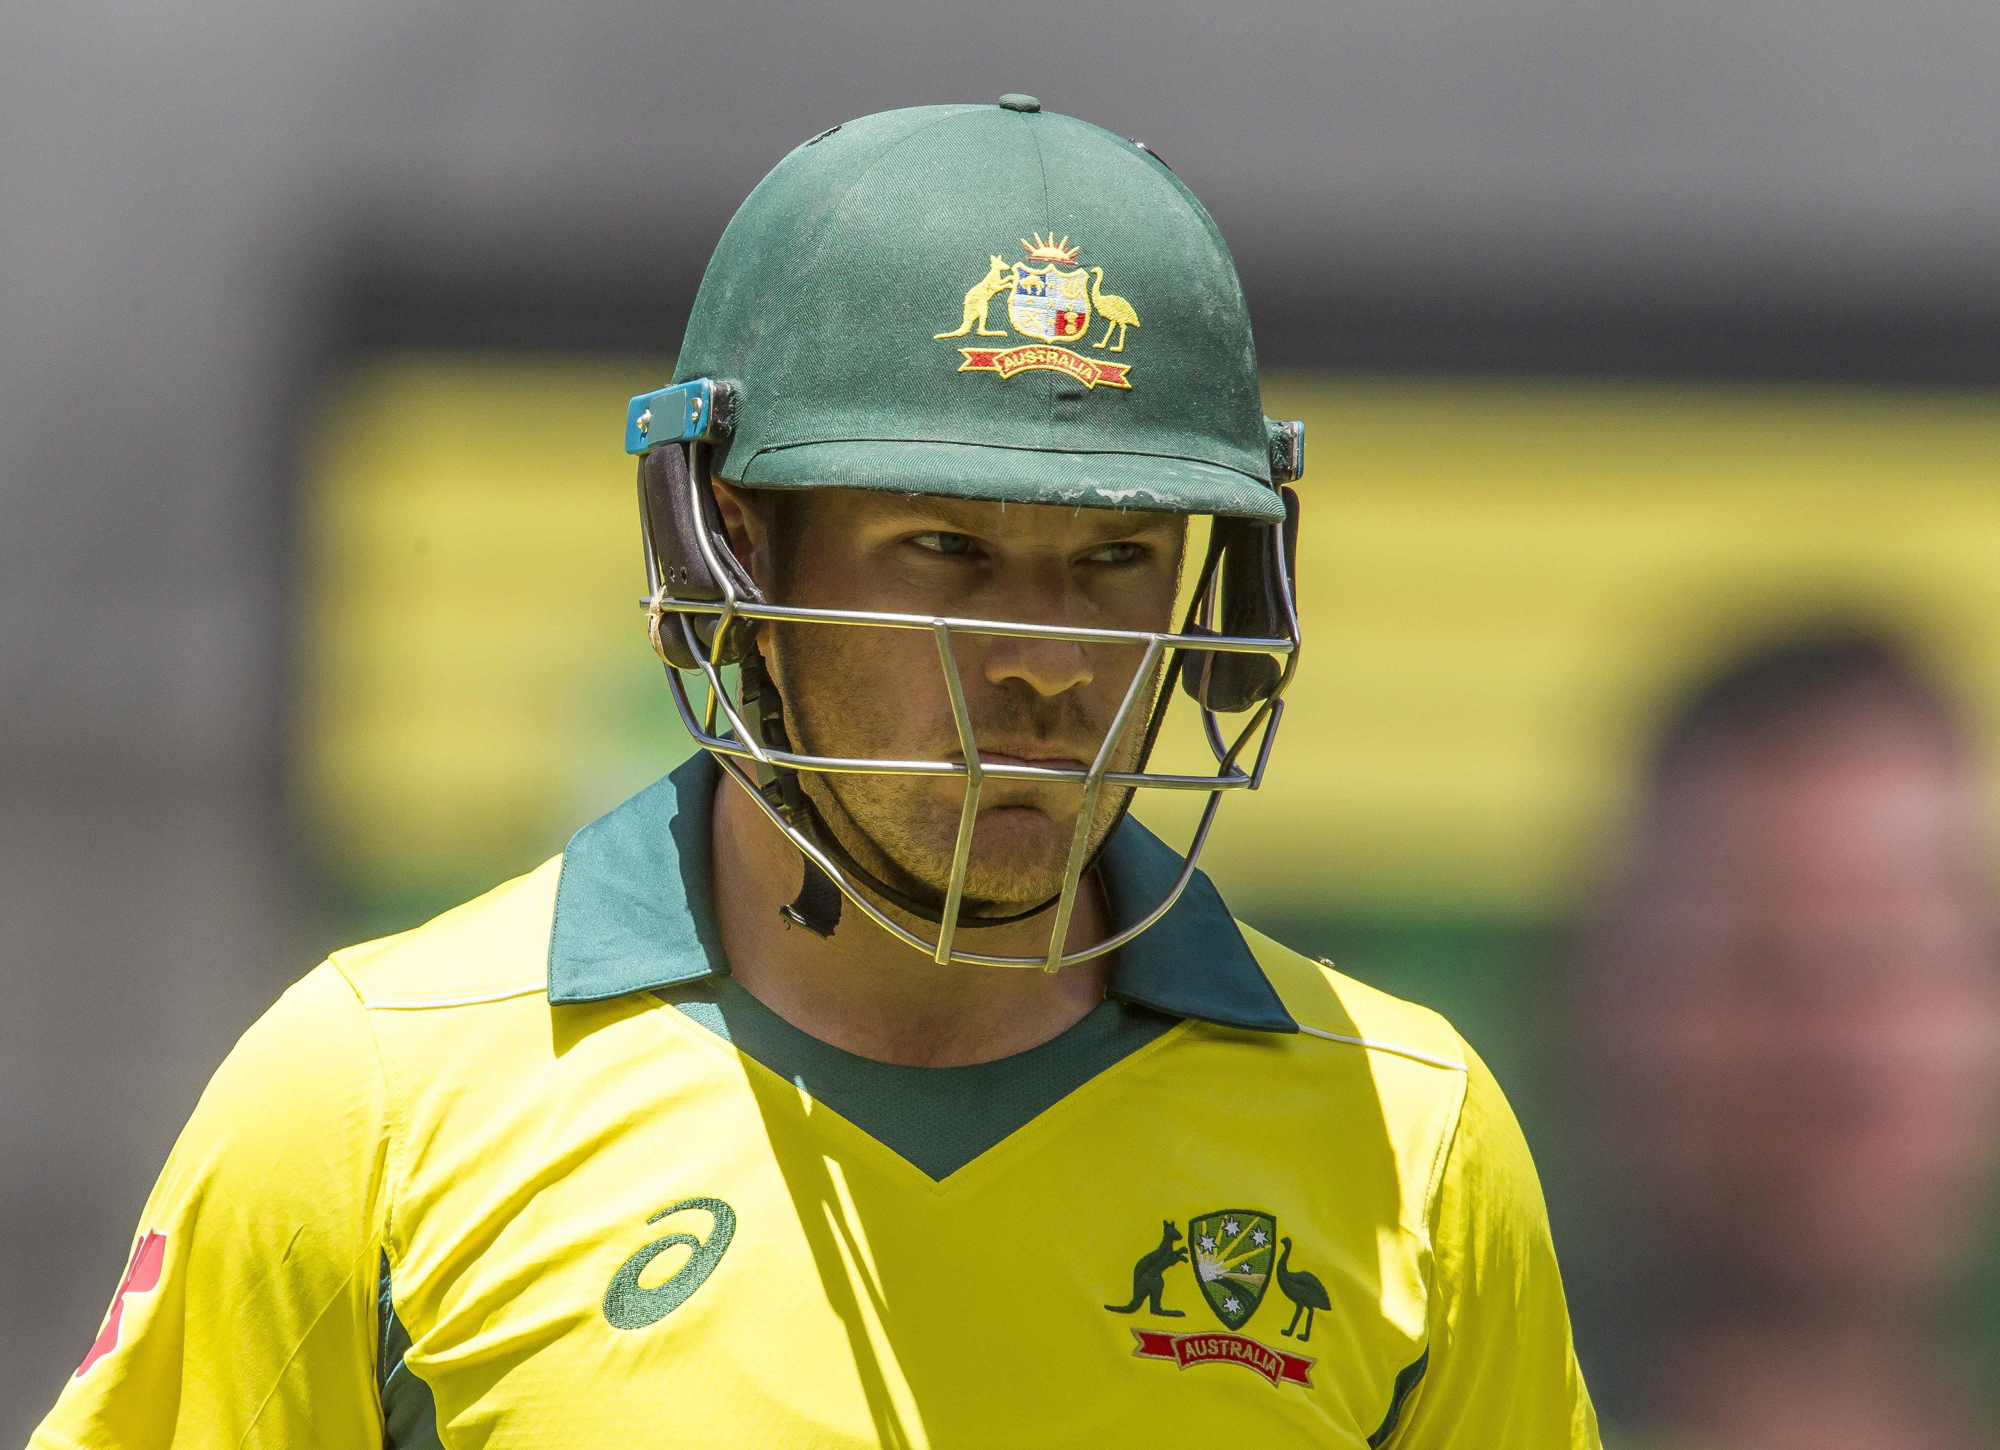 Australia's captain Aaron Finch walks off after being dismissed during the first one-day international (ODI) cricket match between South Africa and Australia at the Optus Stadium in Perth on November 4, 2018. (Photo by TONY ASHBY / AFP) / --IMAGE RESTRICT